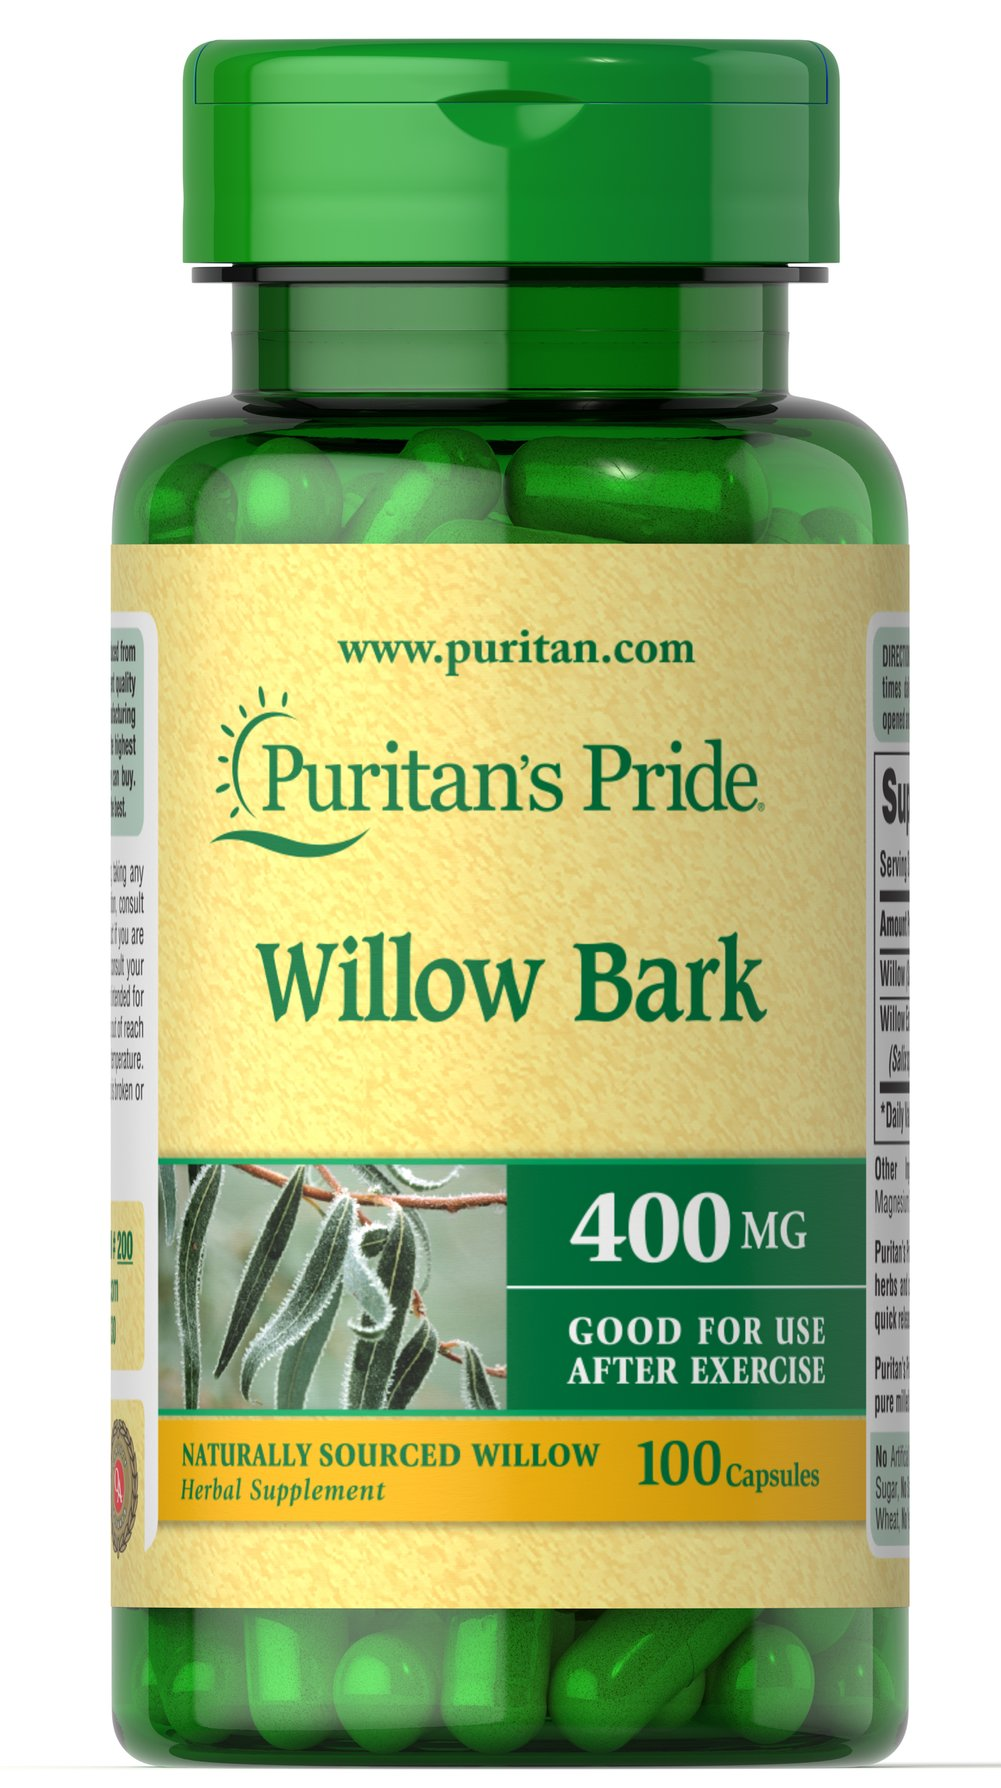 White Willow Bark 400 mg <p>Good for Minor Muscle Pain After Exercise**</p> 100 Capsules 400 mg $9.29